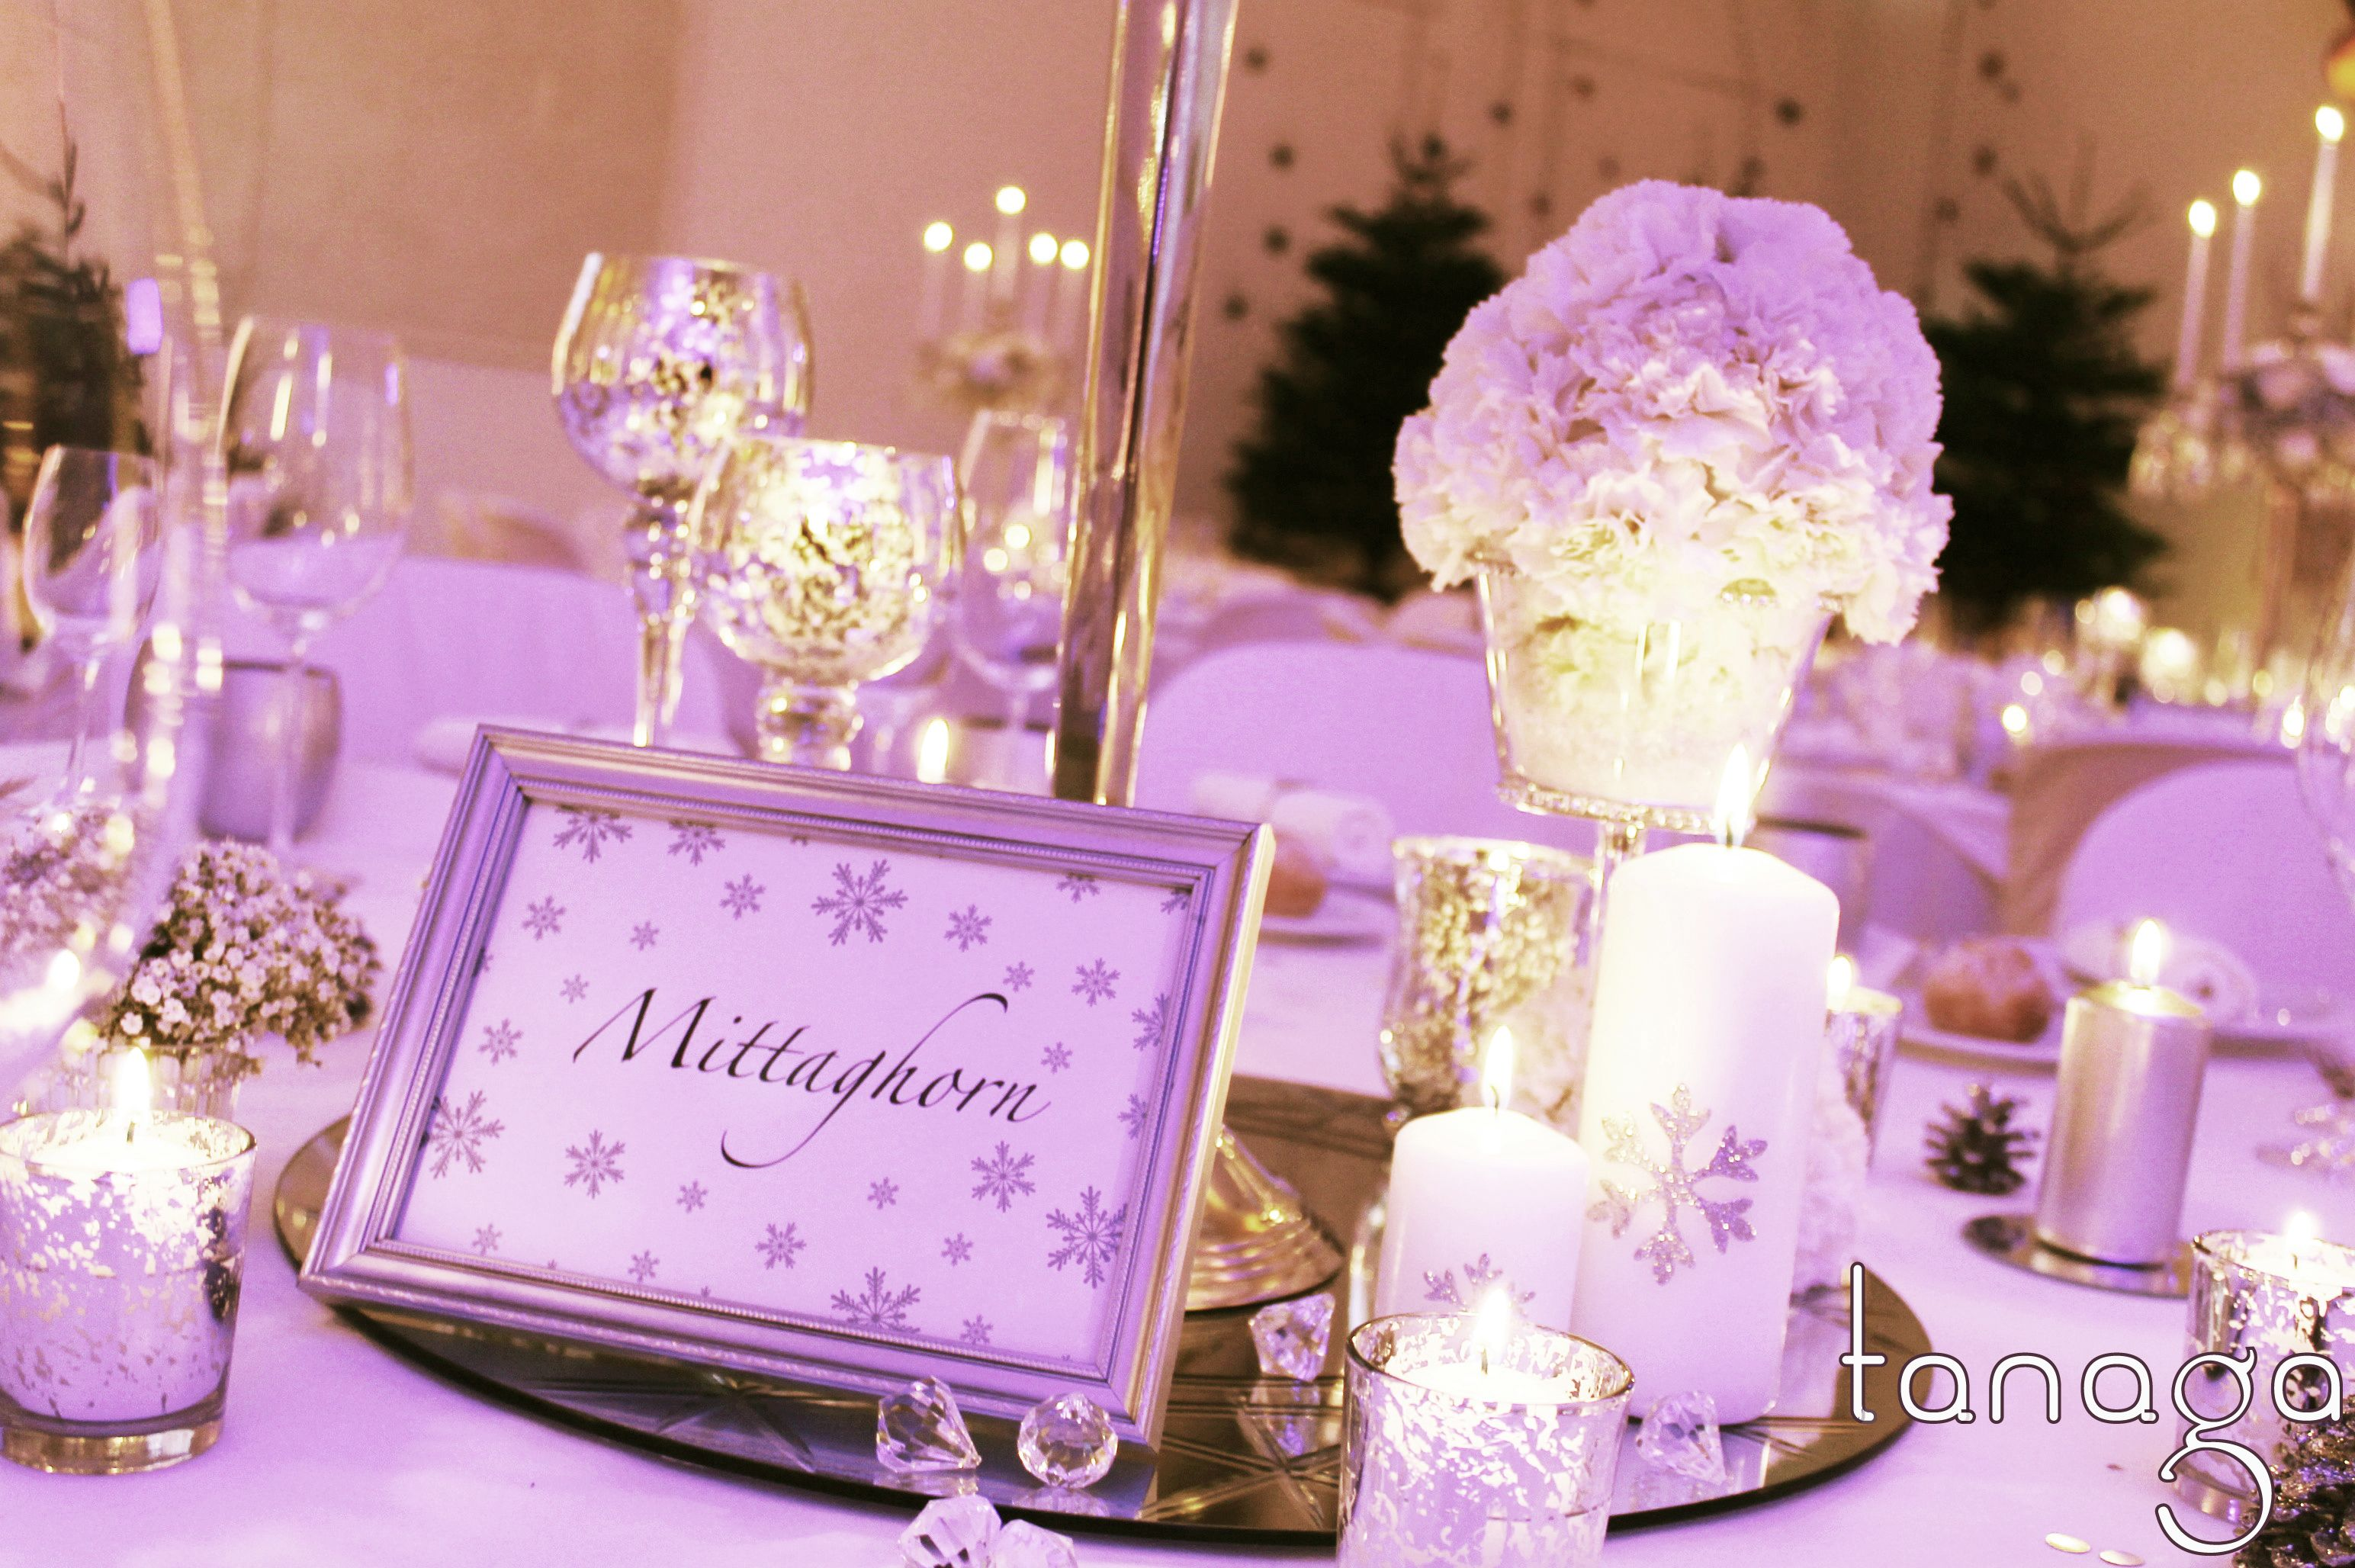 Décoration de #table #mariage hiver #winter #wedding, mirroir ...